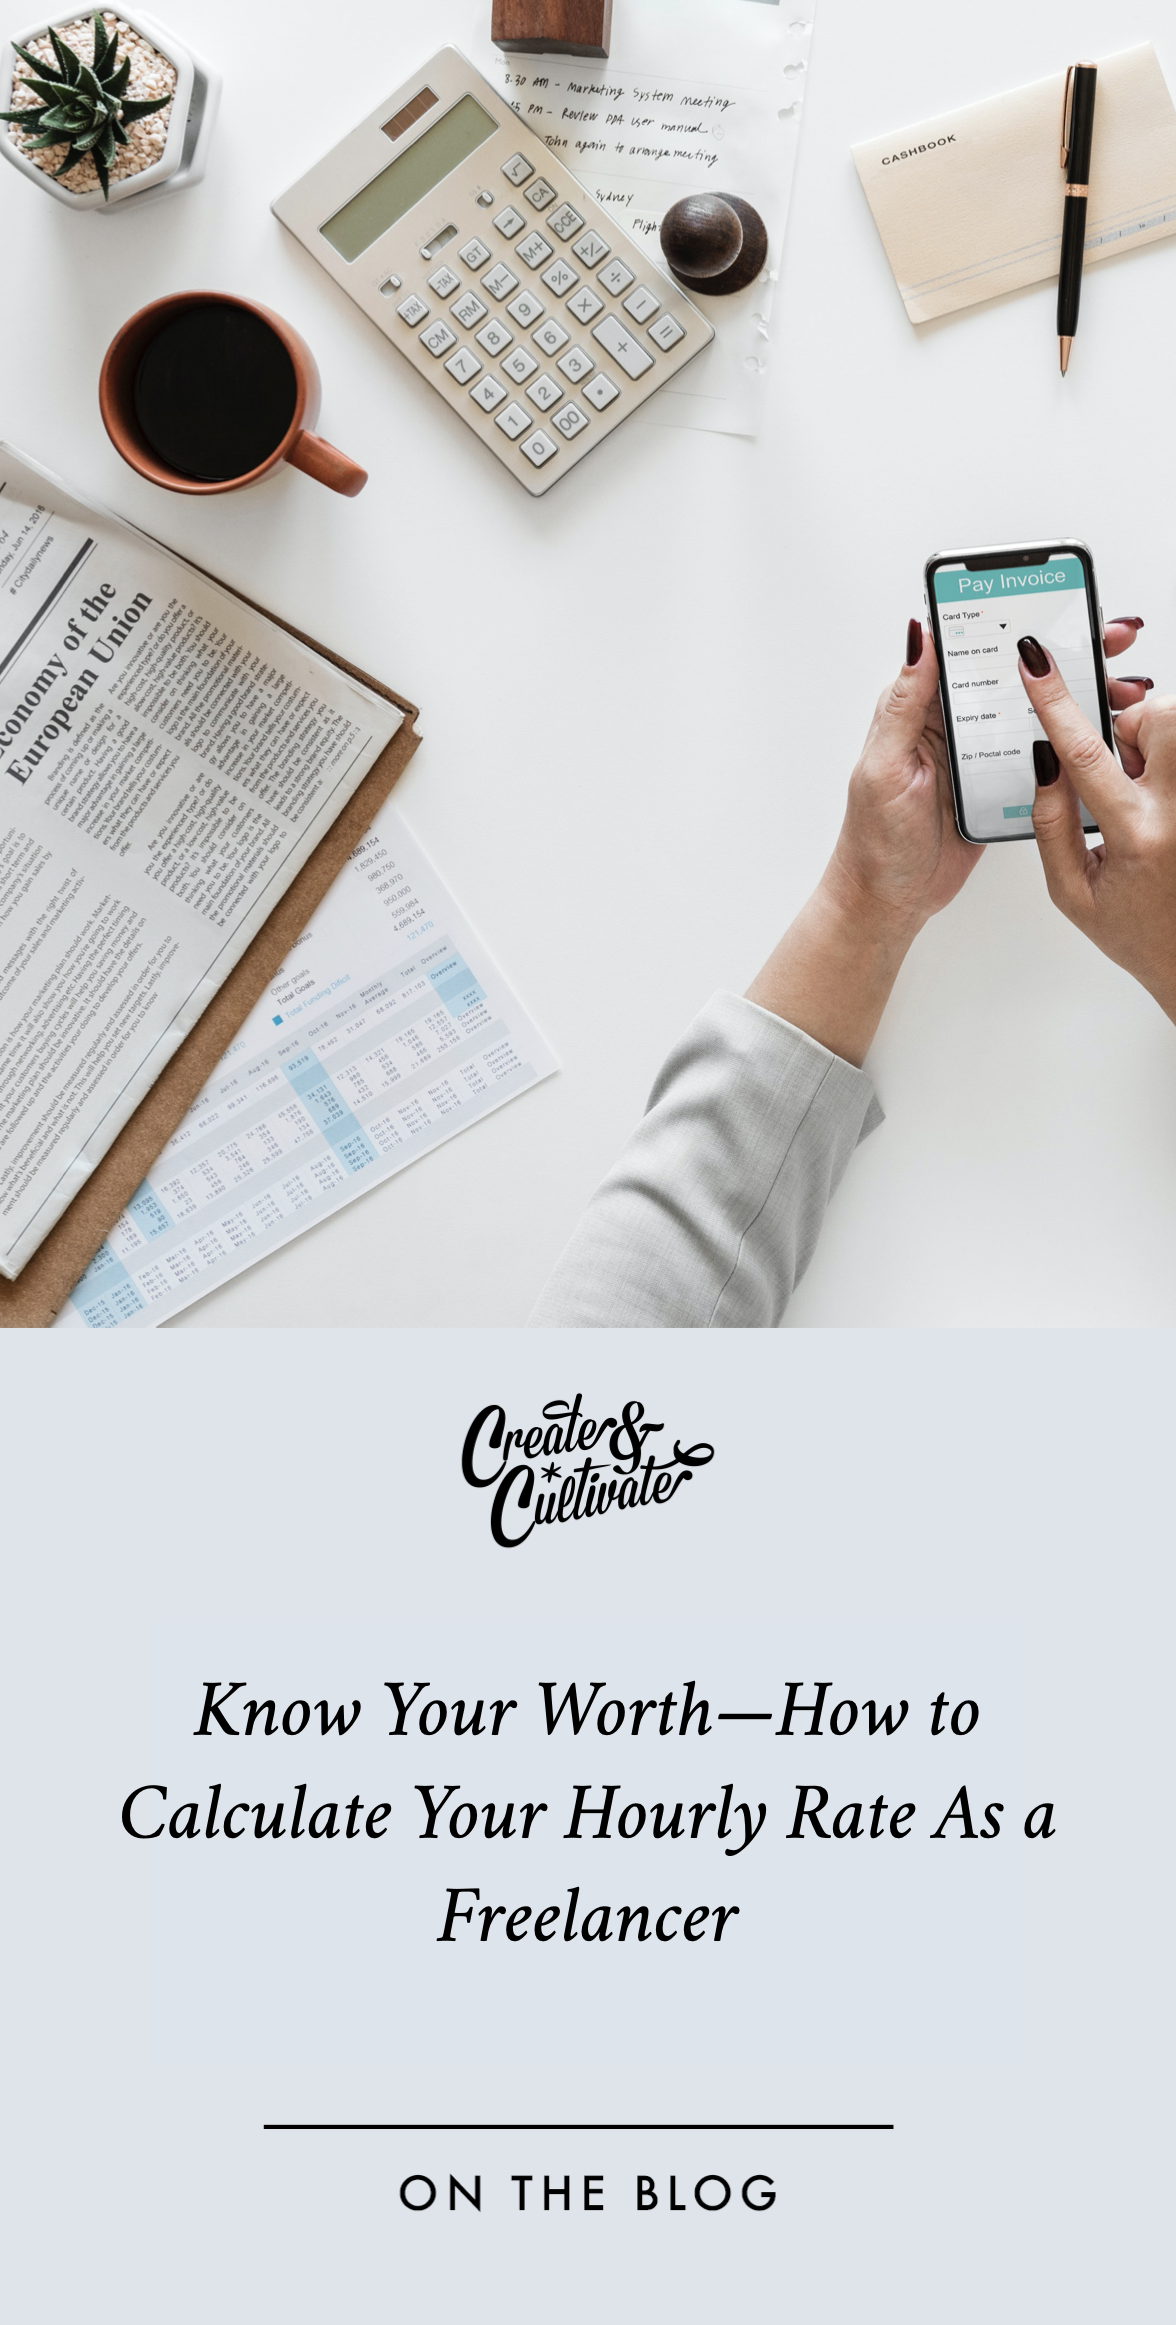 Know Your Worth How To Calculate Your Hourly Rate As A Freelancer Create Cultivate Marketing Skills Freelance Business Tips